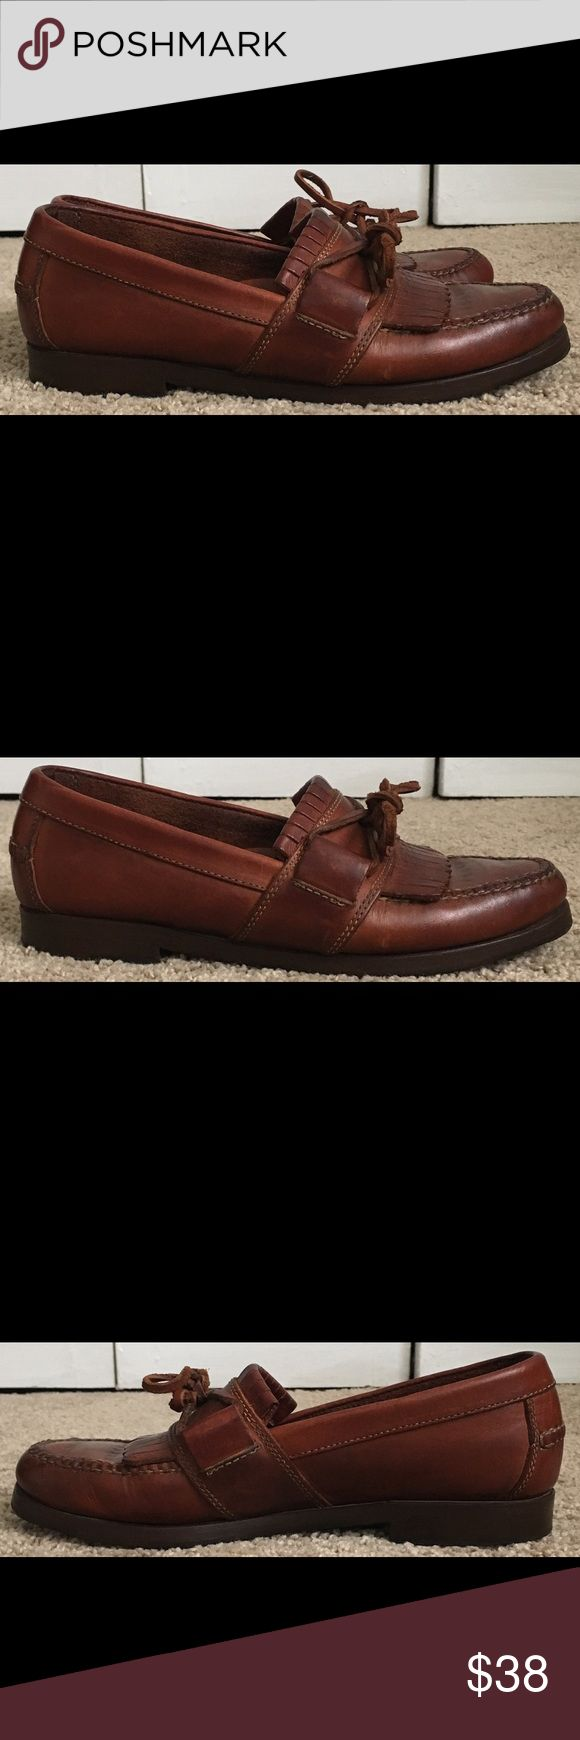 COLE HAAN F5638 Brown Leather Loafers Womens 7.5 Worn a few times. Has wear but in Great Worn Condition. See Pictures. Bin 1 B8 Cole Haan Shoes Flats & Loafers